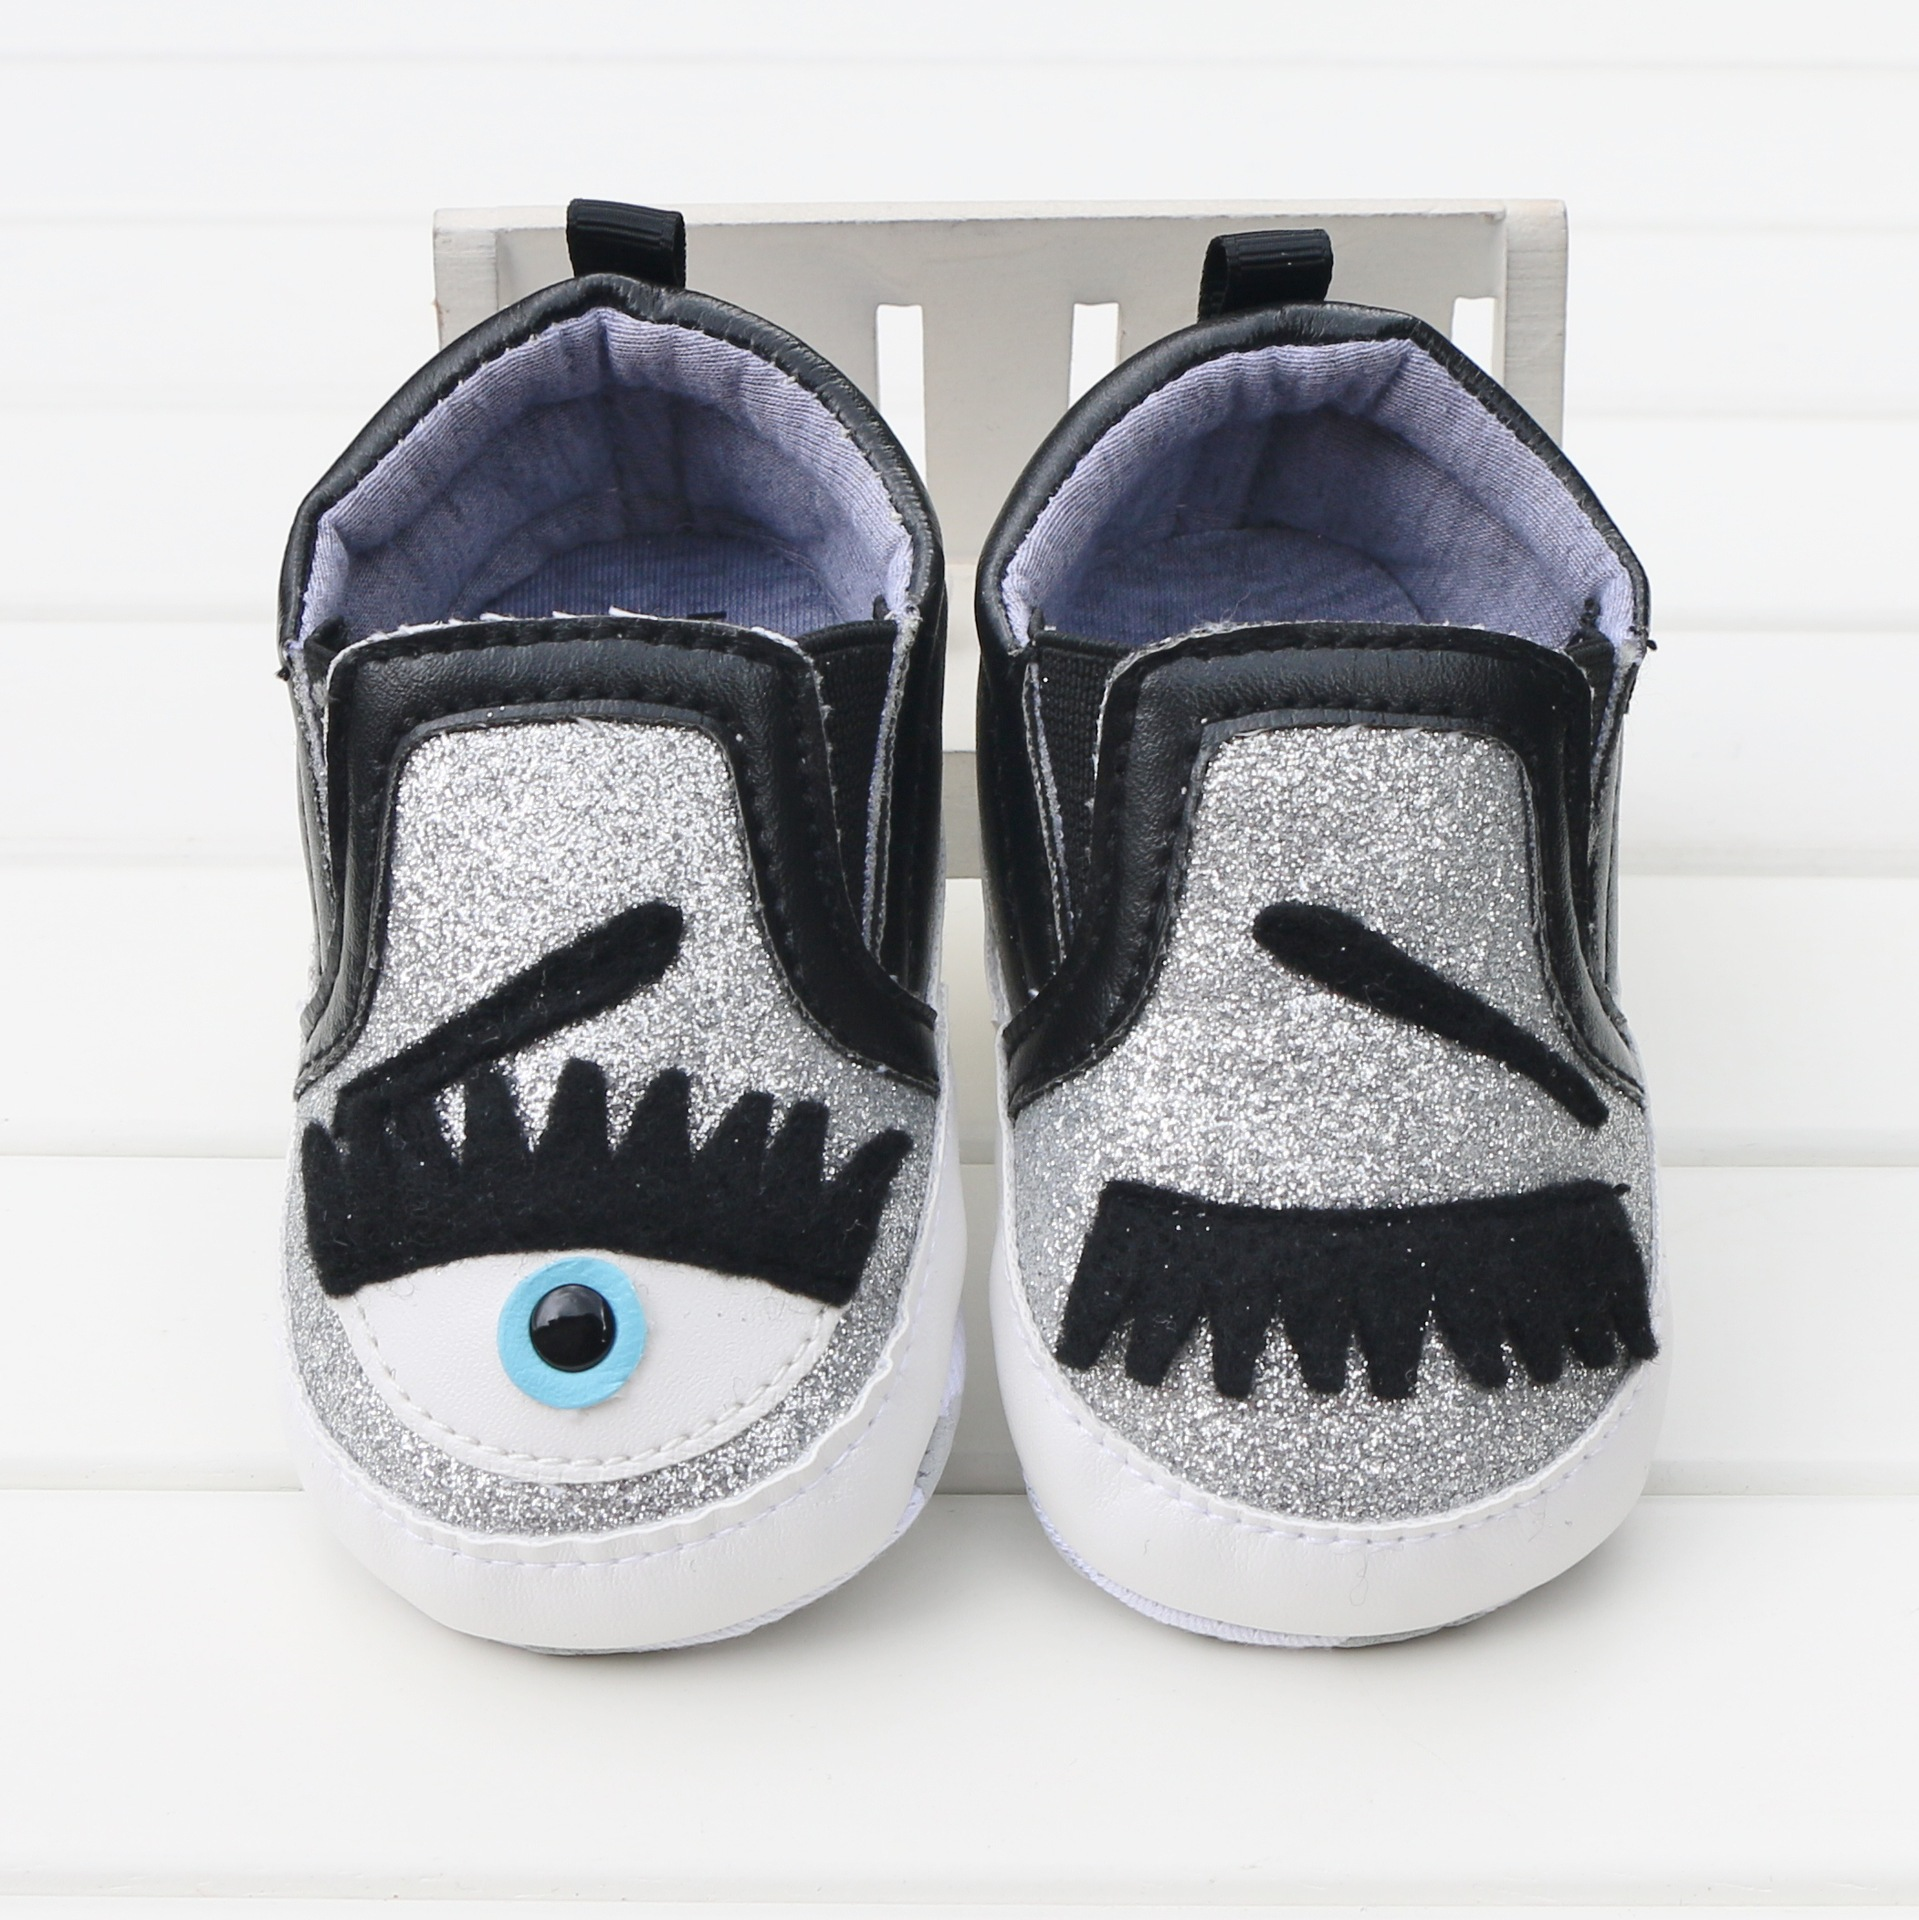 Cute Eyelashes Eye Toddler Baby Shoes Slip-on Boys And Girls Newborn Crib Shoes First Walker No-Slip Infants Casual Sport Shoes